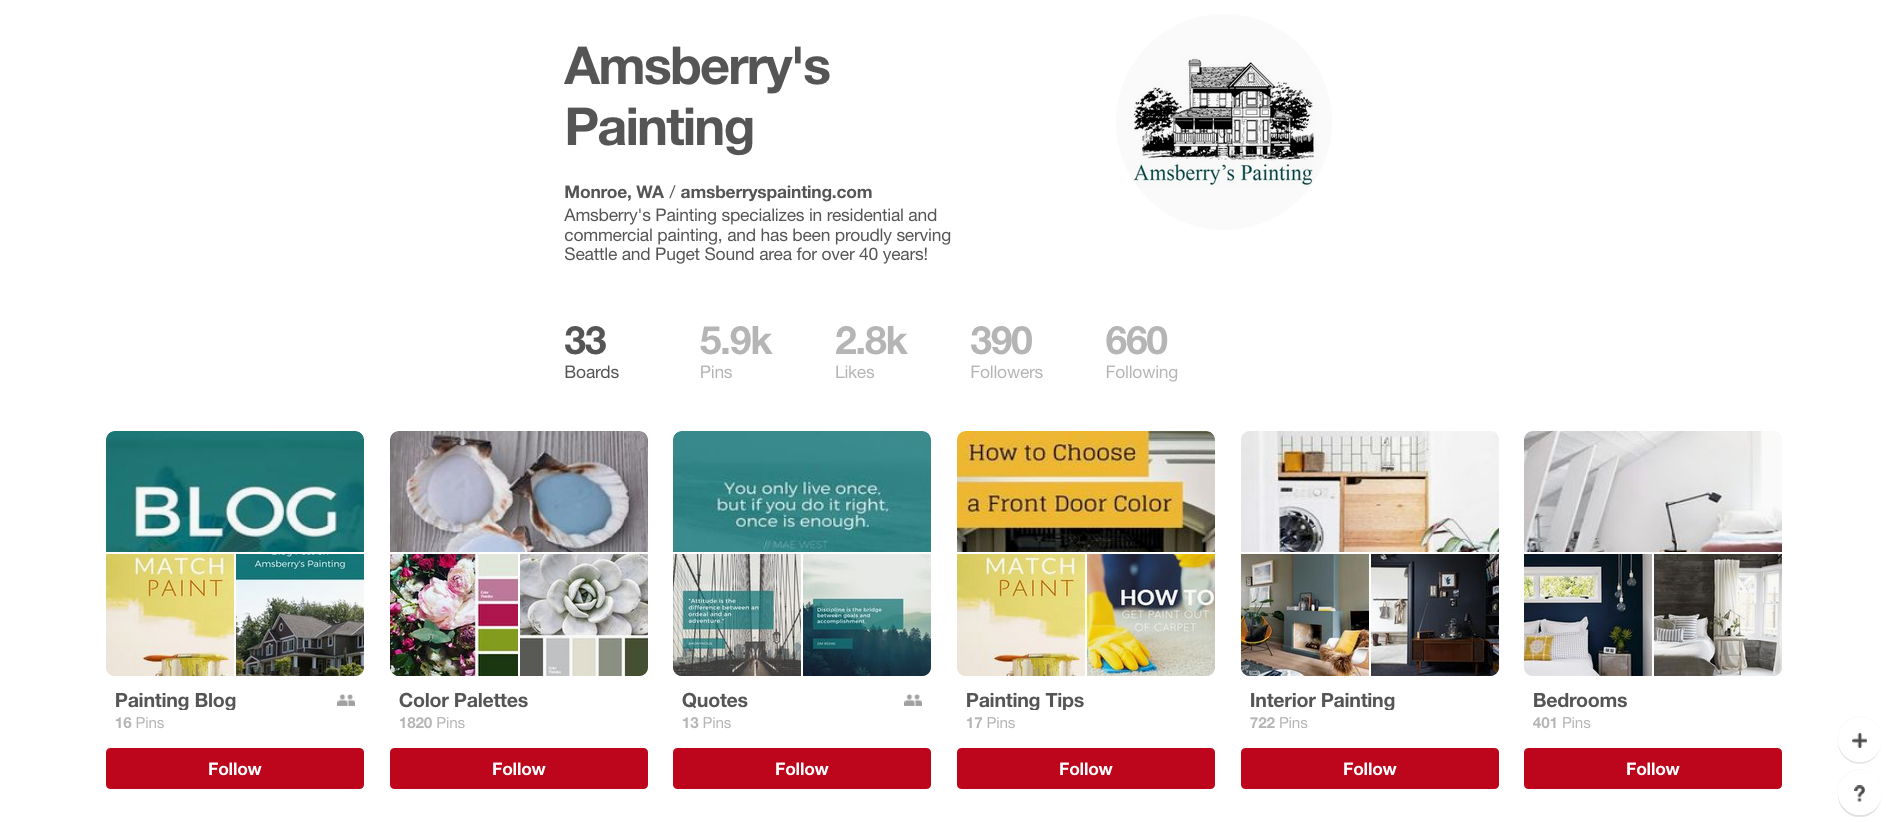 Amsberry's Painting Pinterest